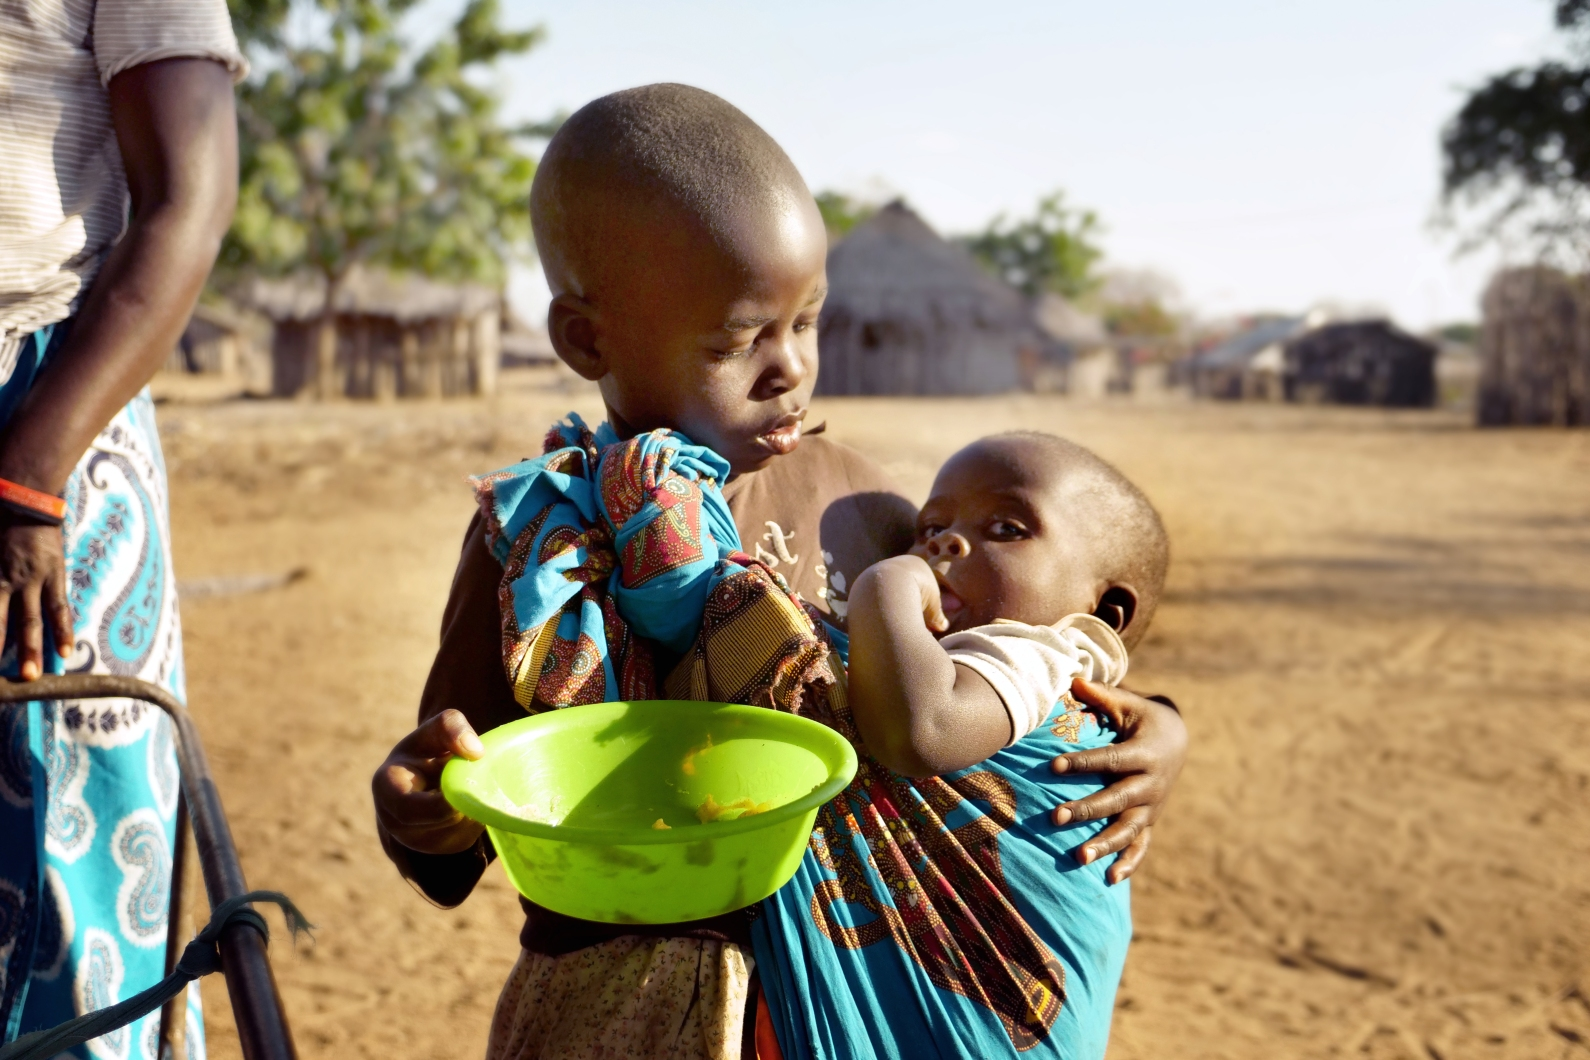 A boy holds a young child, wrapped in fabric